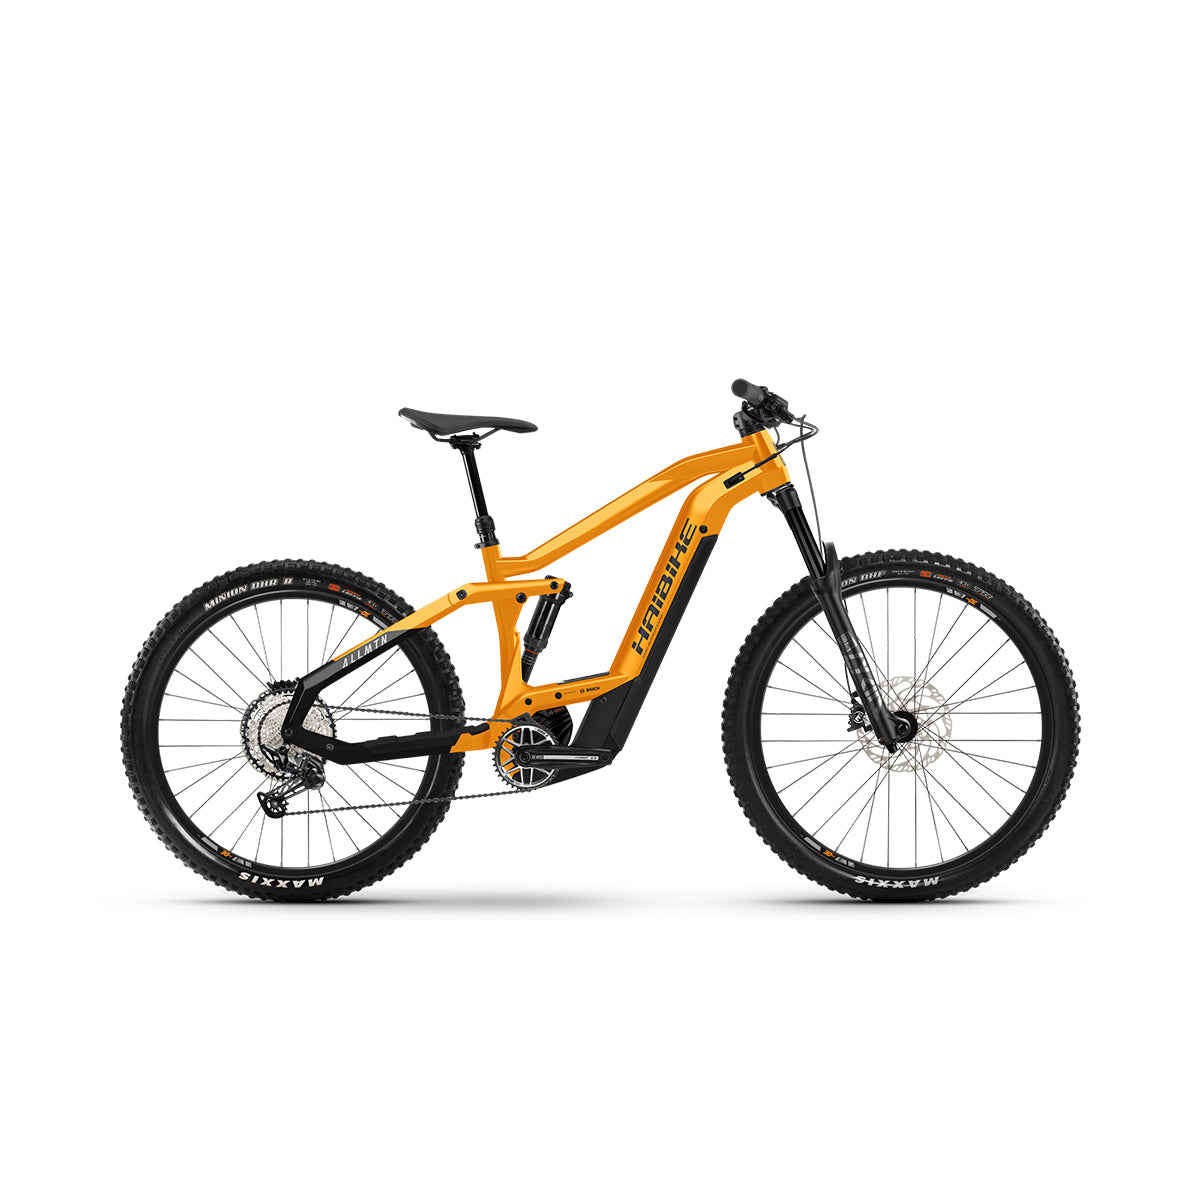 Haibike AllMtn 4 Electric Mountain Bike - 2021 Orange